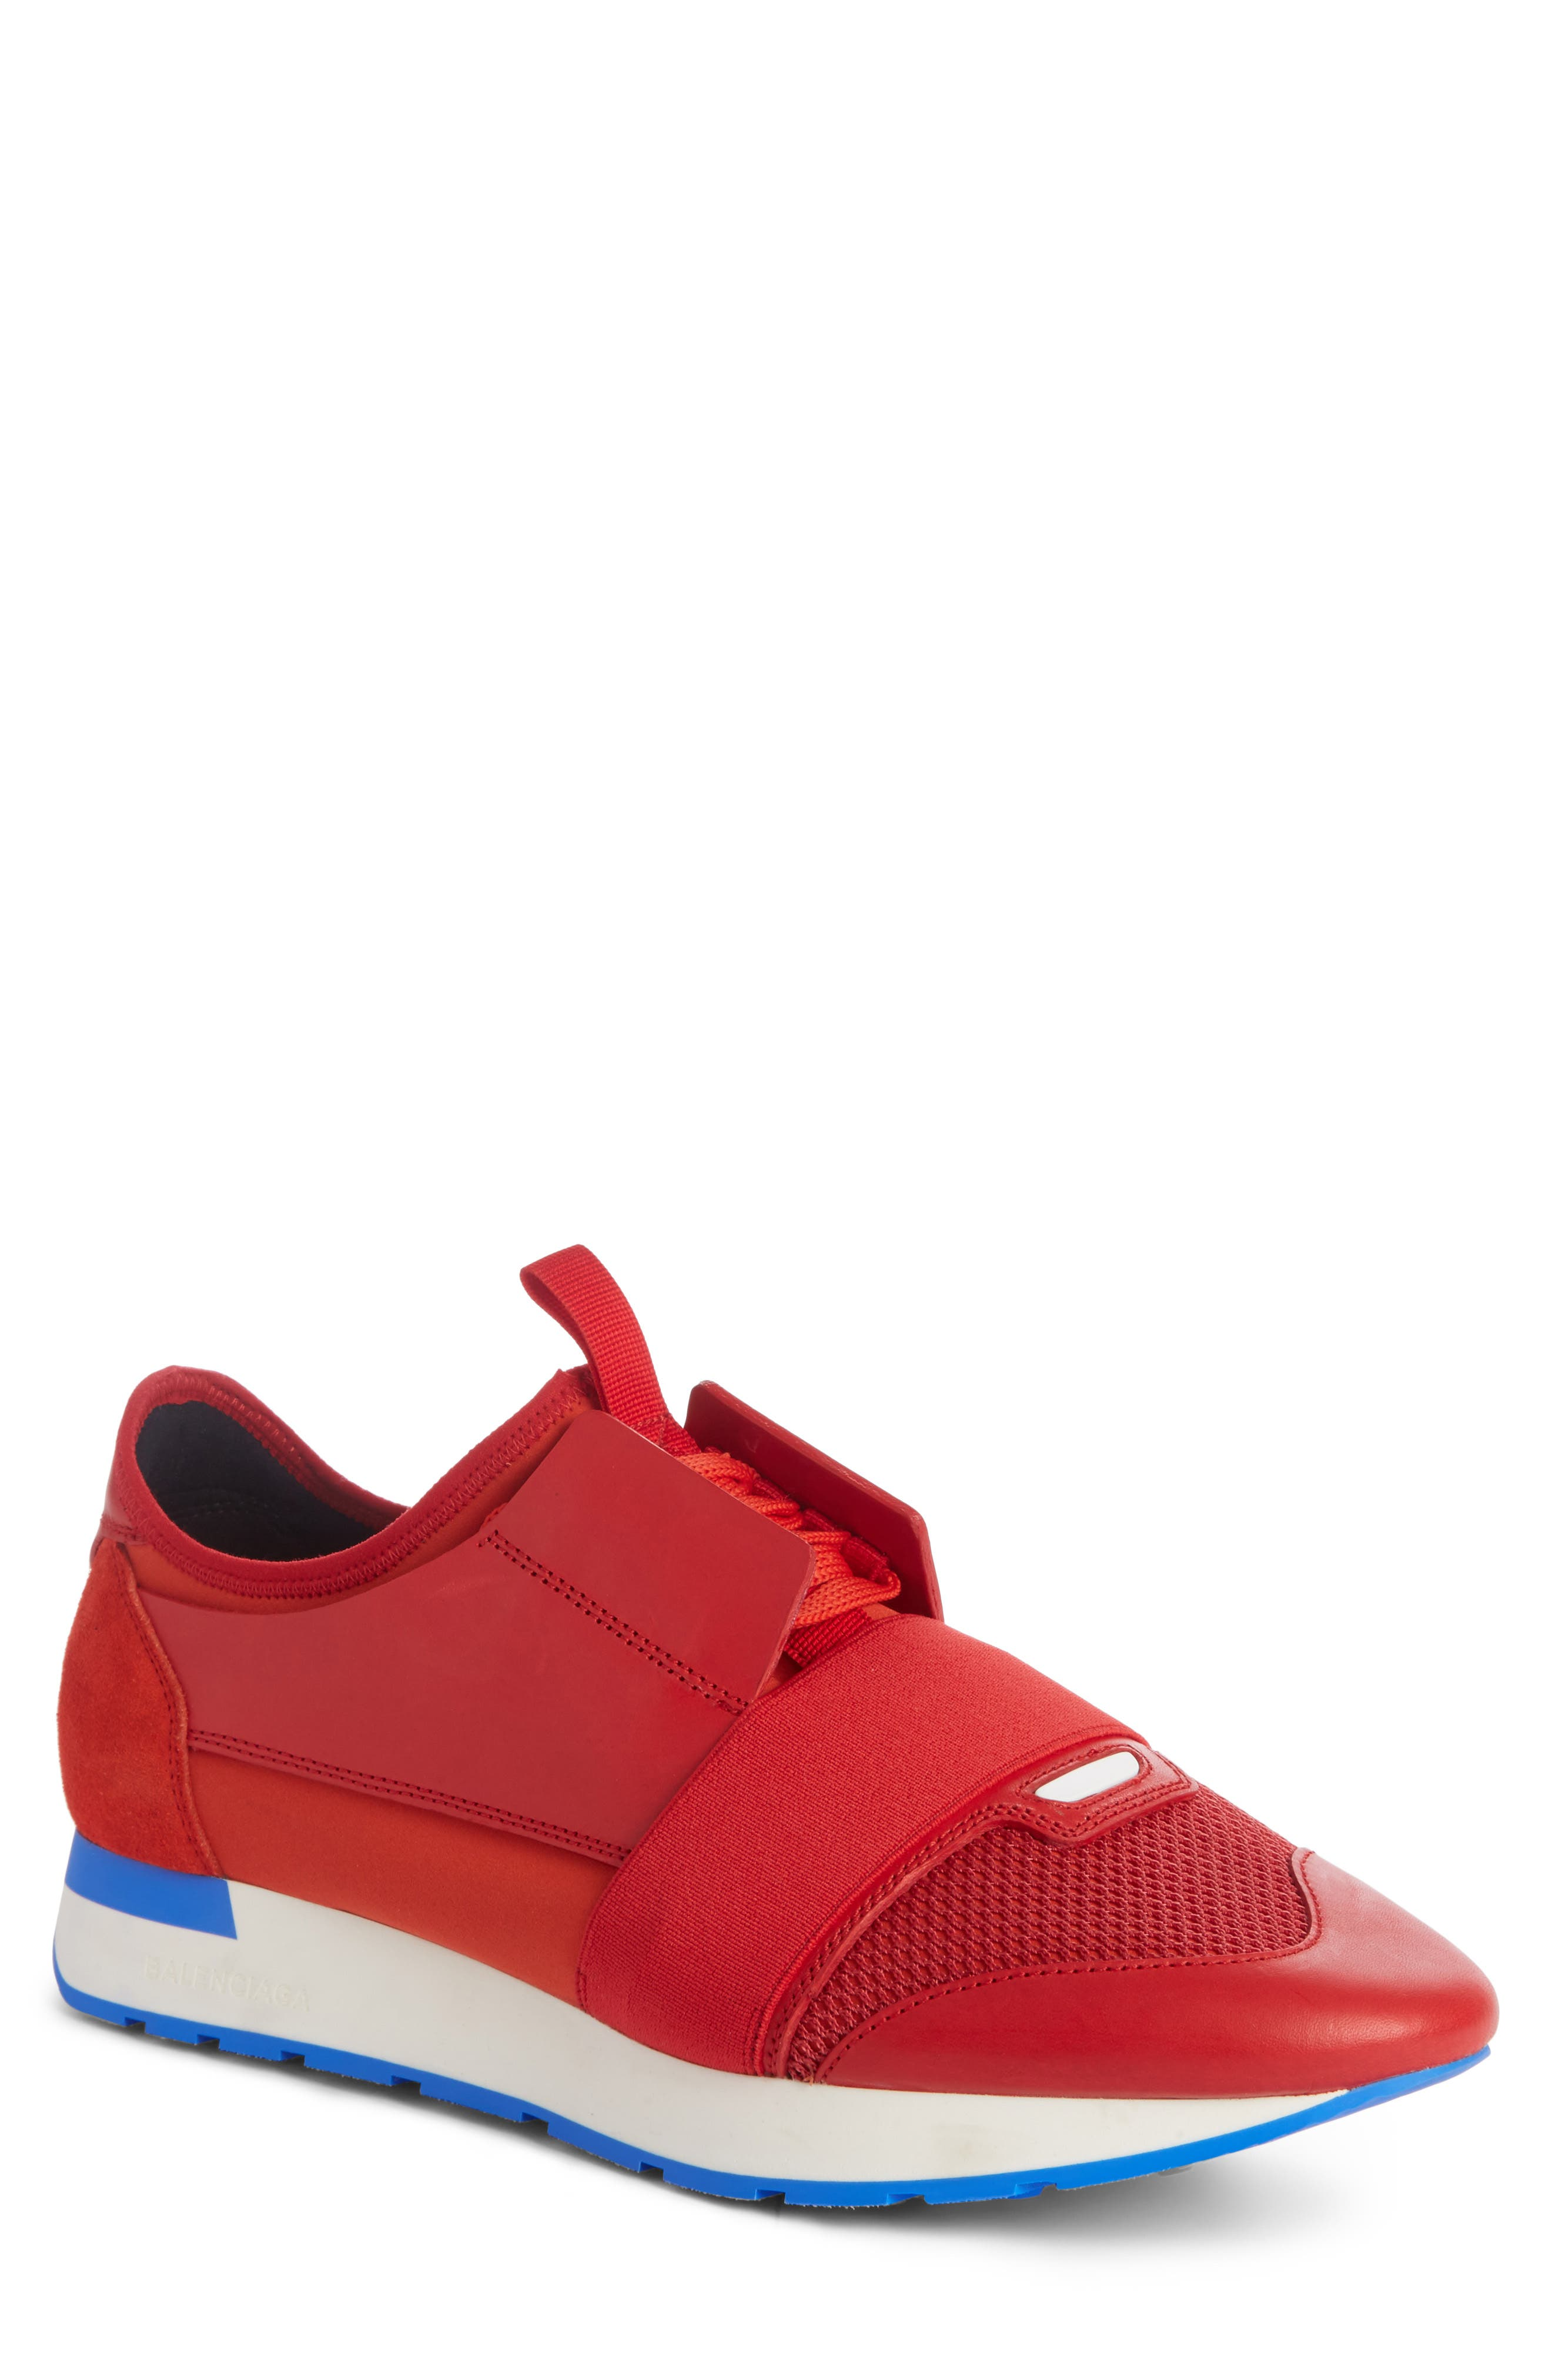 balenciaga red sneakers price